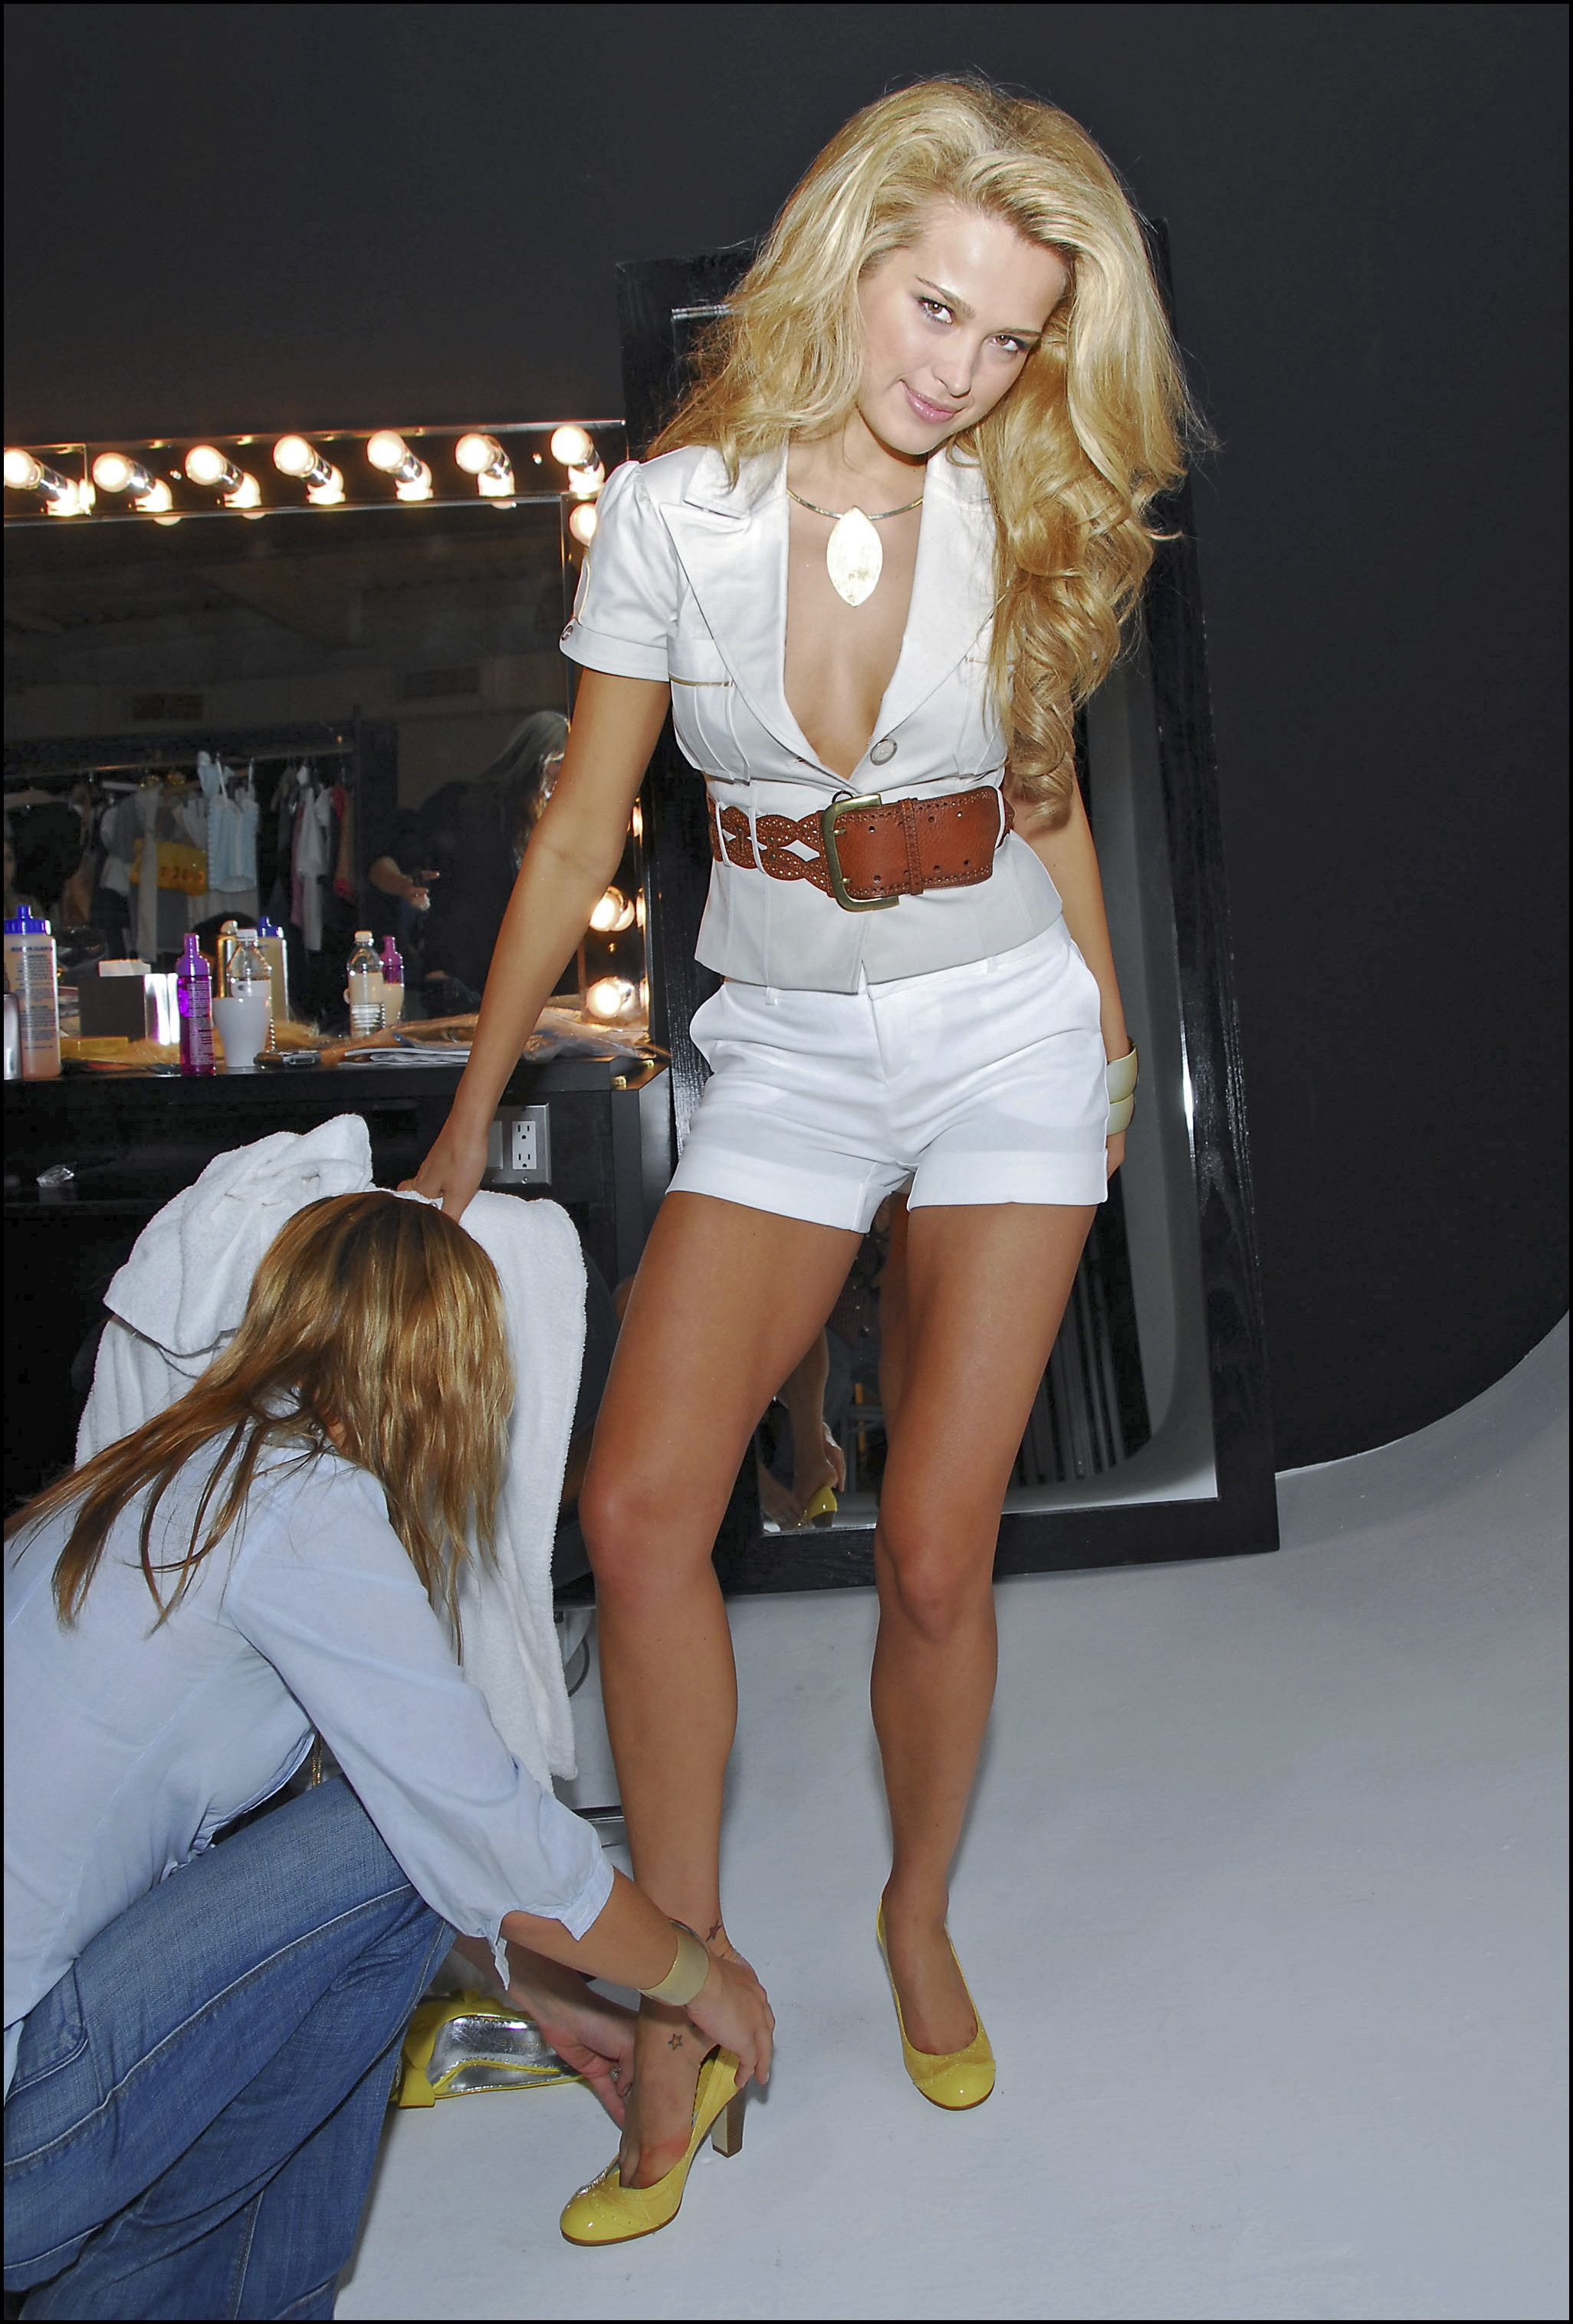 54450_Celebutopia-Petra_Nemcova_behind_the_scenes_on_her_new_photo_shoot_for_the_clothing_company_Rampage-01_122_977lo.jpeg